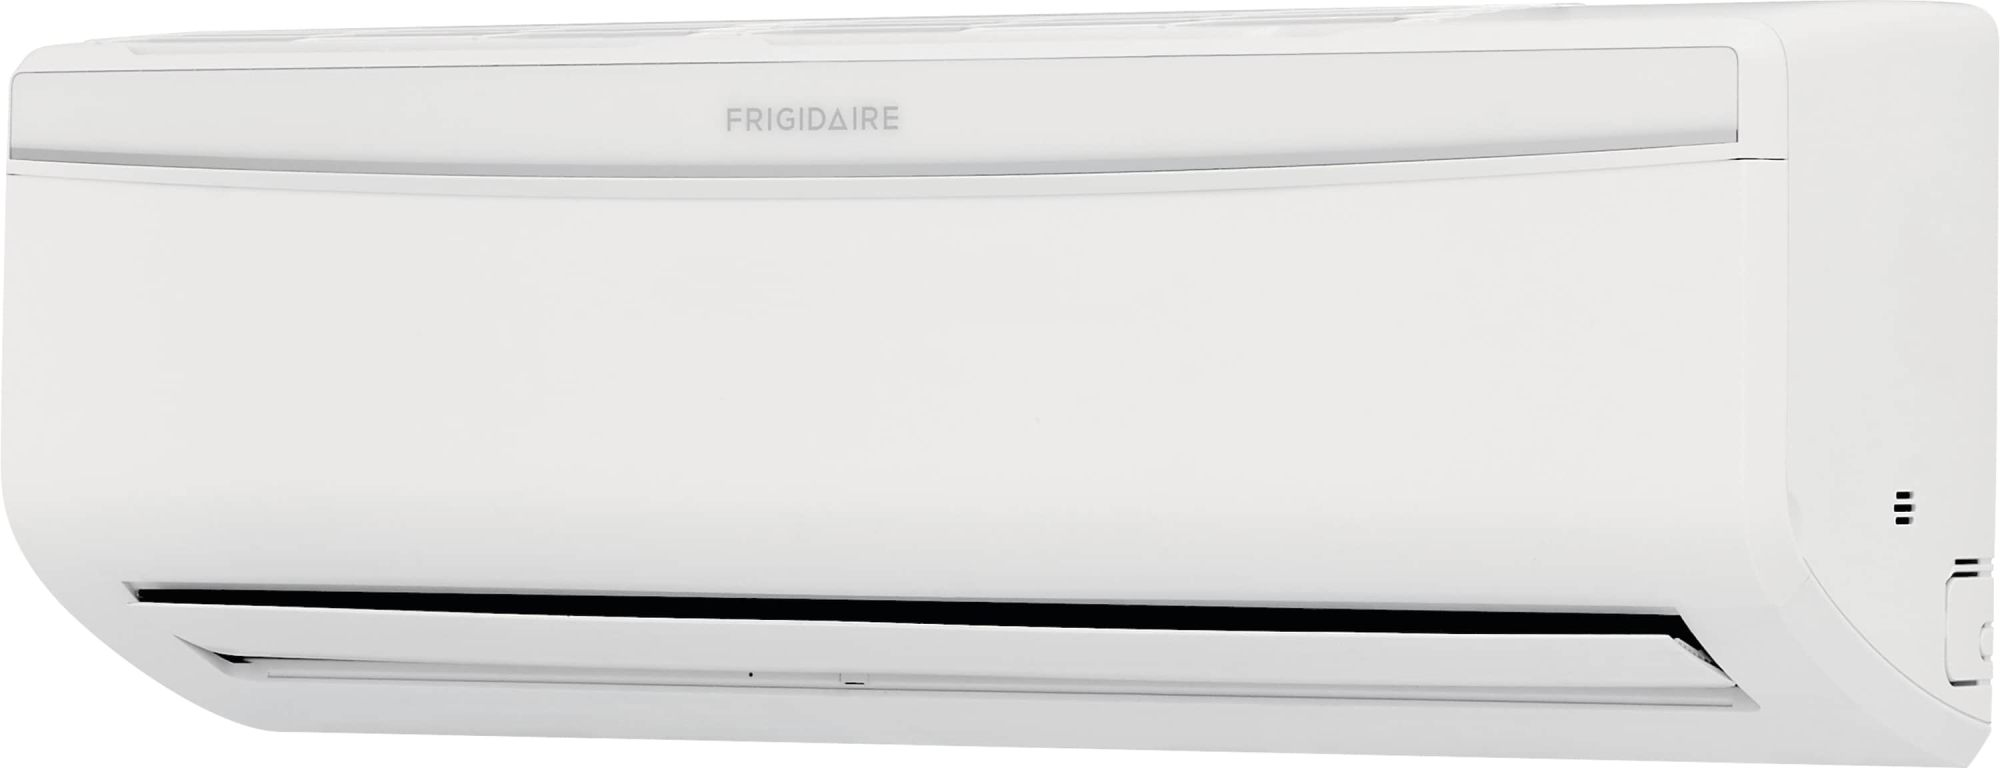 hight resolution of ductless split air conditioner cool and heat 9 000 btu heat pump 115v